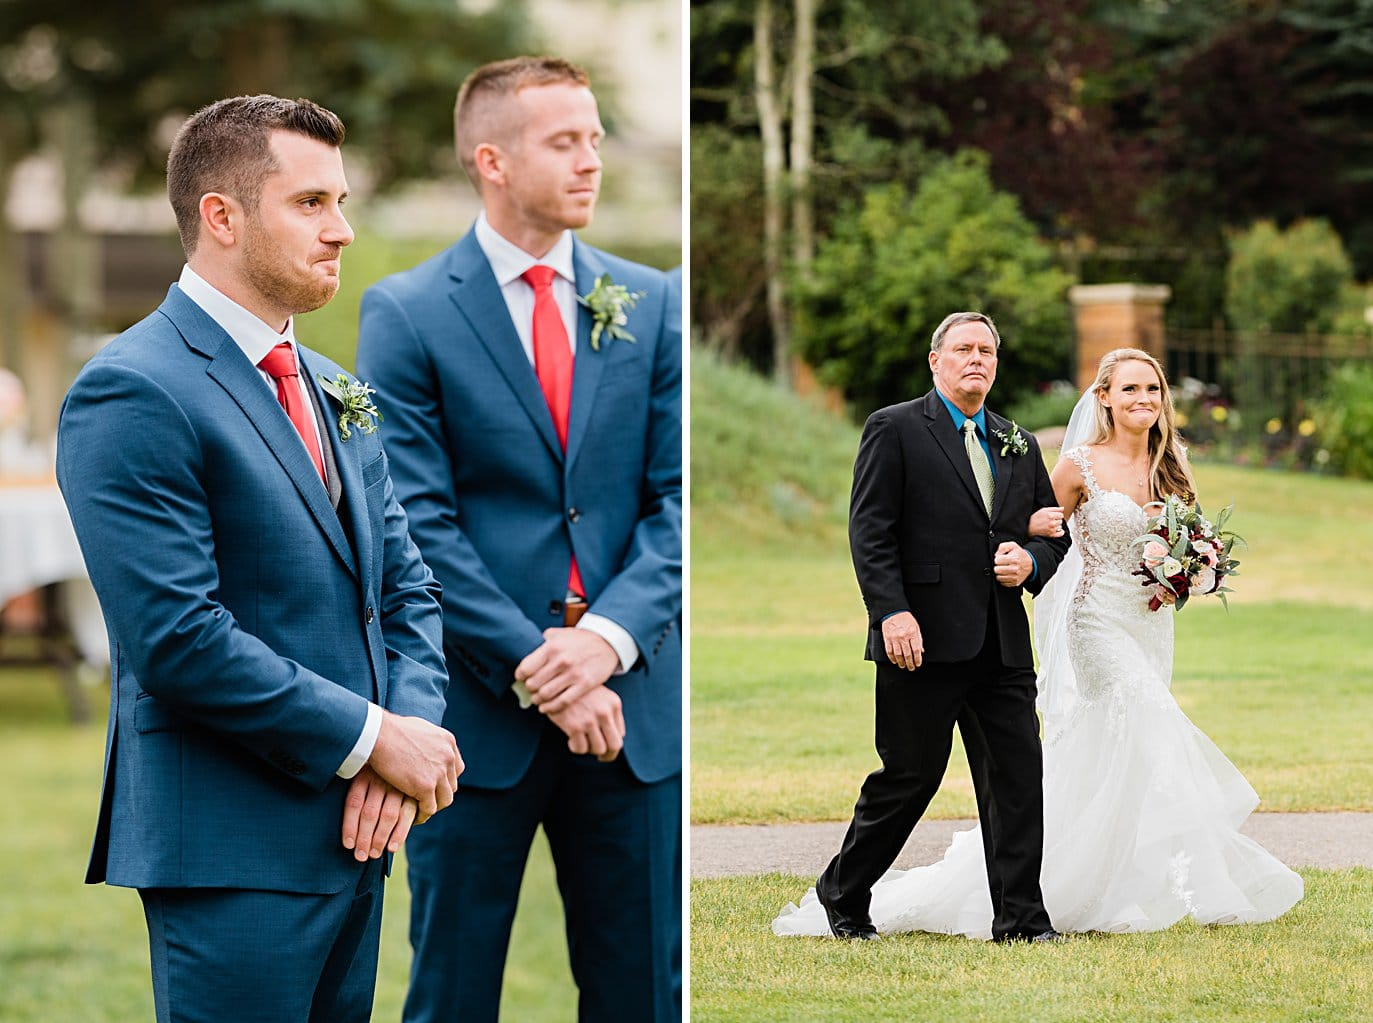 groom and bride see each other for the first time on wedding day as bride walks down aisle at Larkspur Vail Wedding by Lyons Wedding photographer Jennie Crate